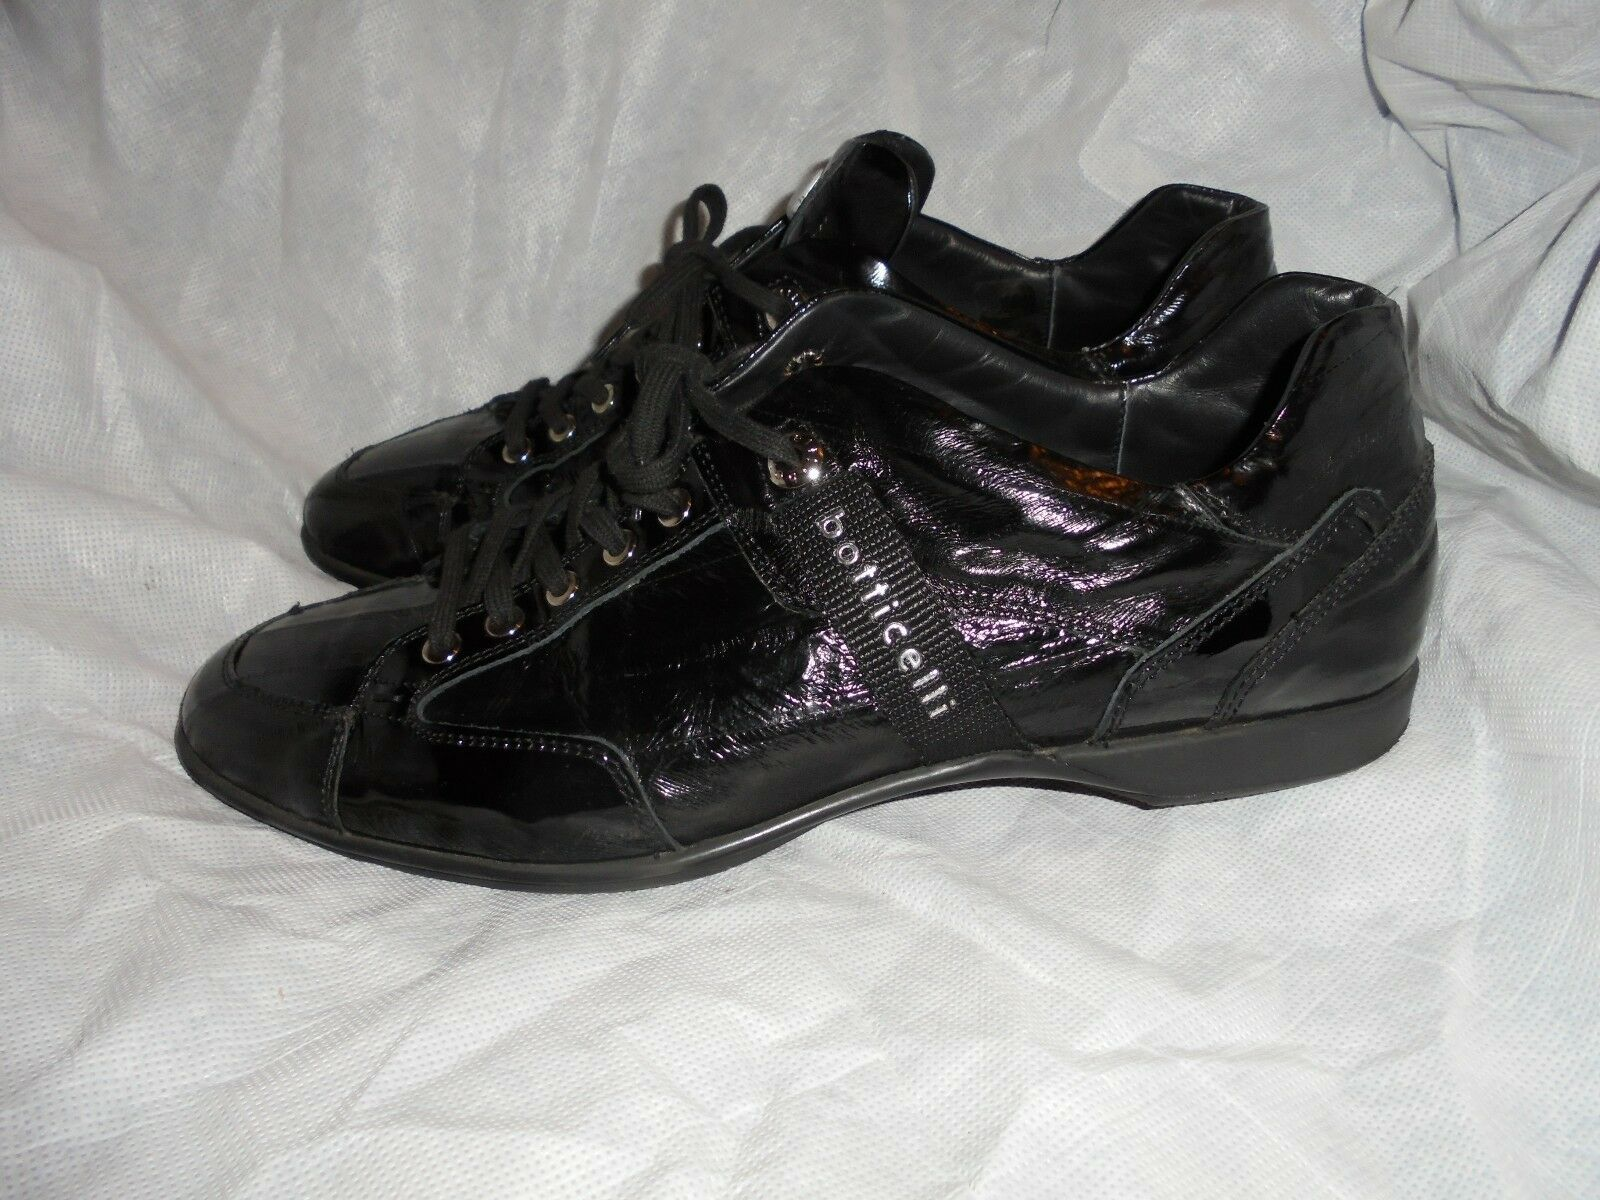 BOTTICELLI LIMITED BLACK LEATHER LACE UP SHOES  SIZE UK 10 EU 44 VGC